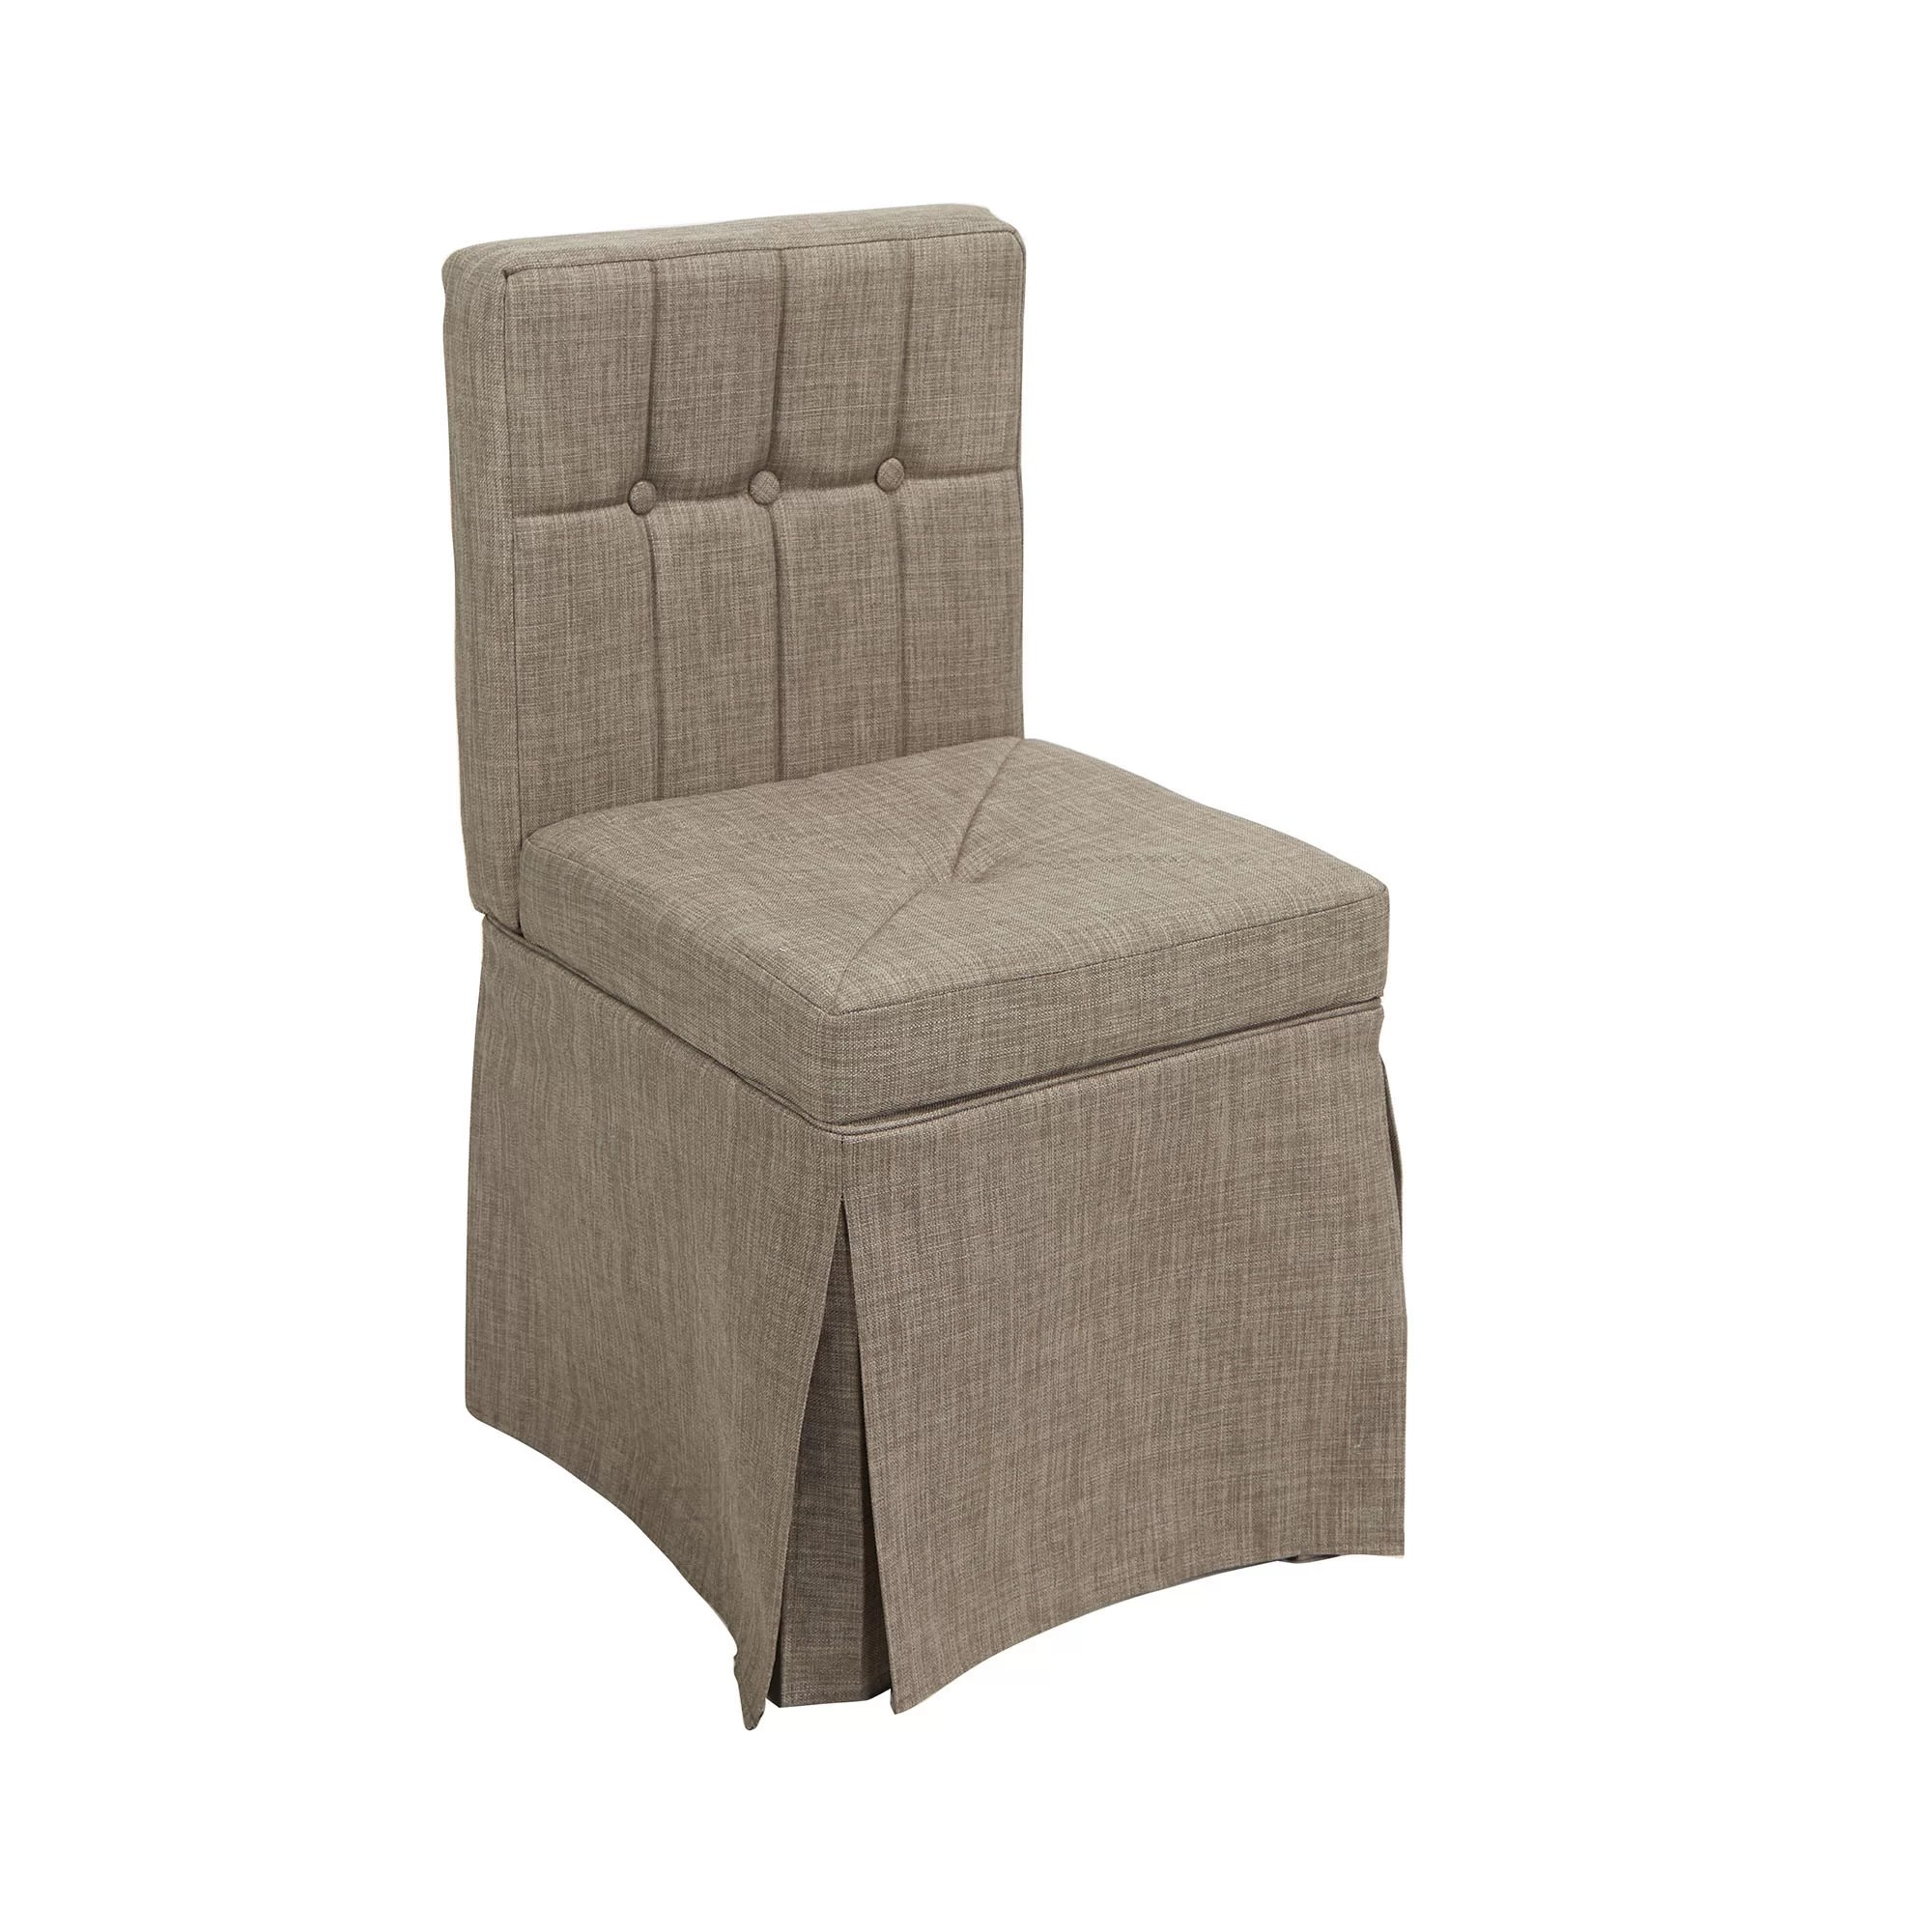 Tufted Vanity Chair Mccluskey Tufted Vanity Stool